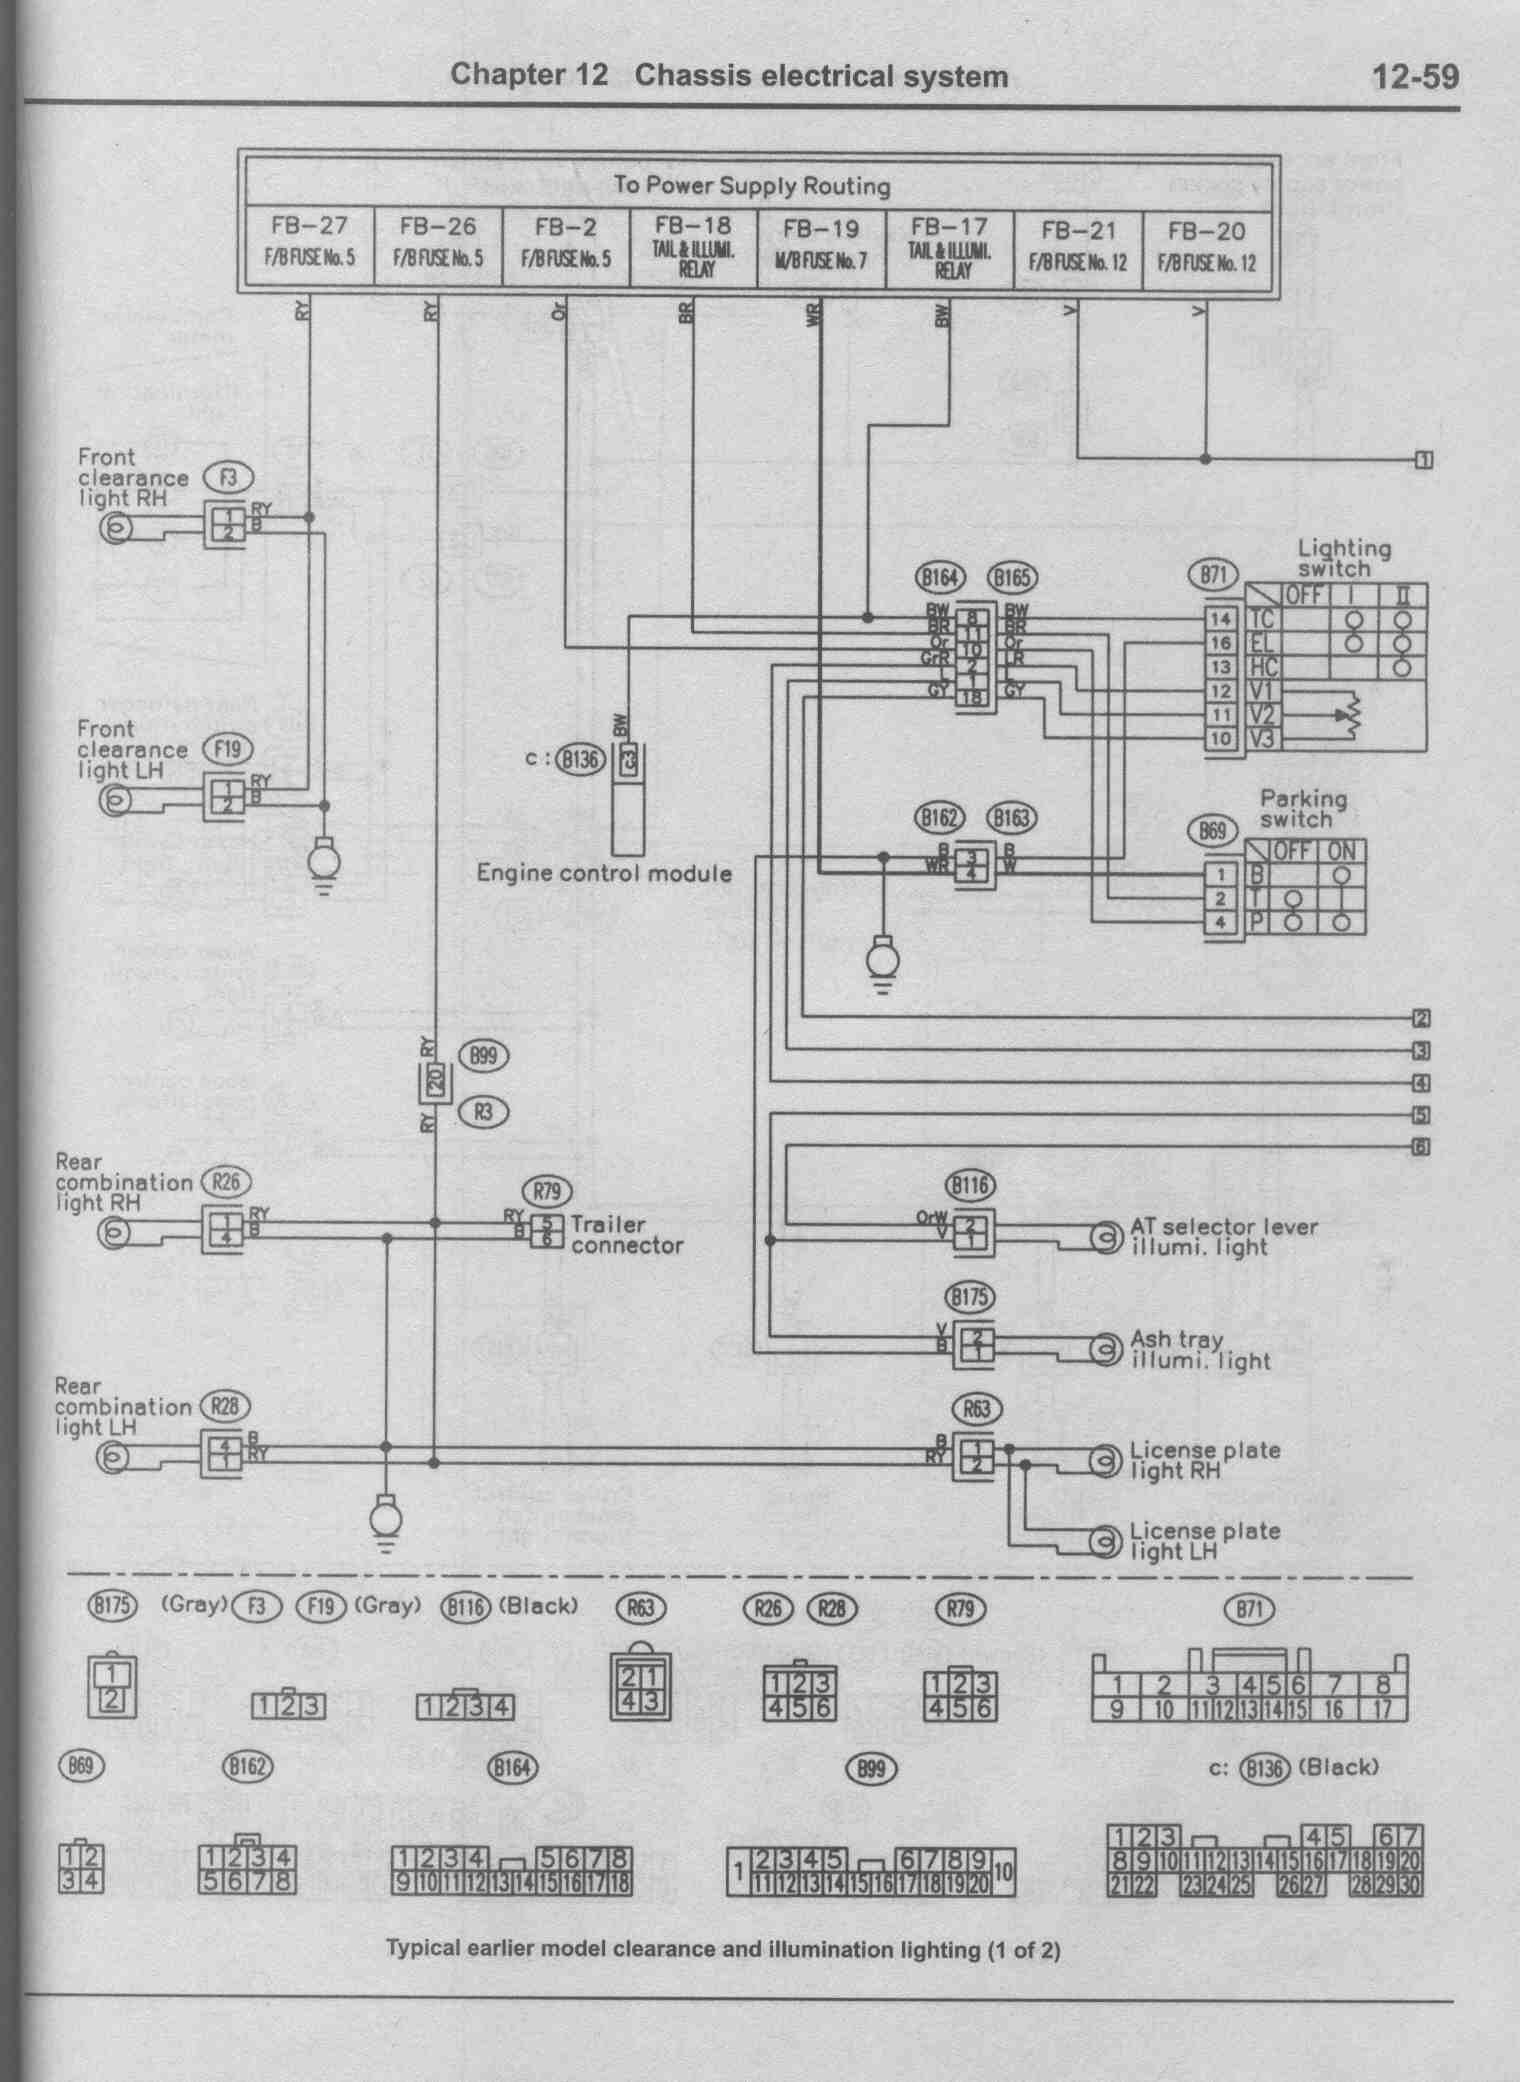 [DIAGRAM] 2007 Subaru Outback Wiring Diagram FULL Version